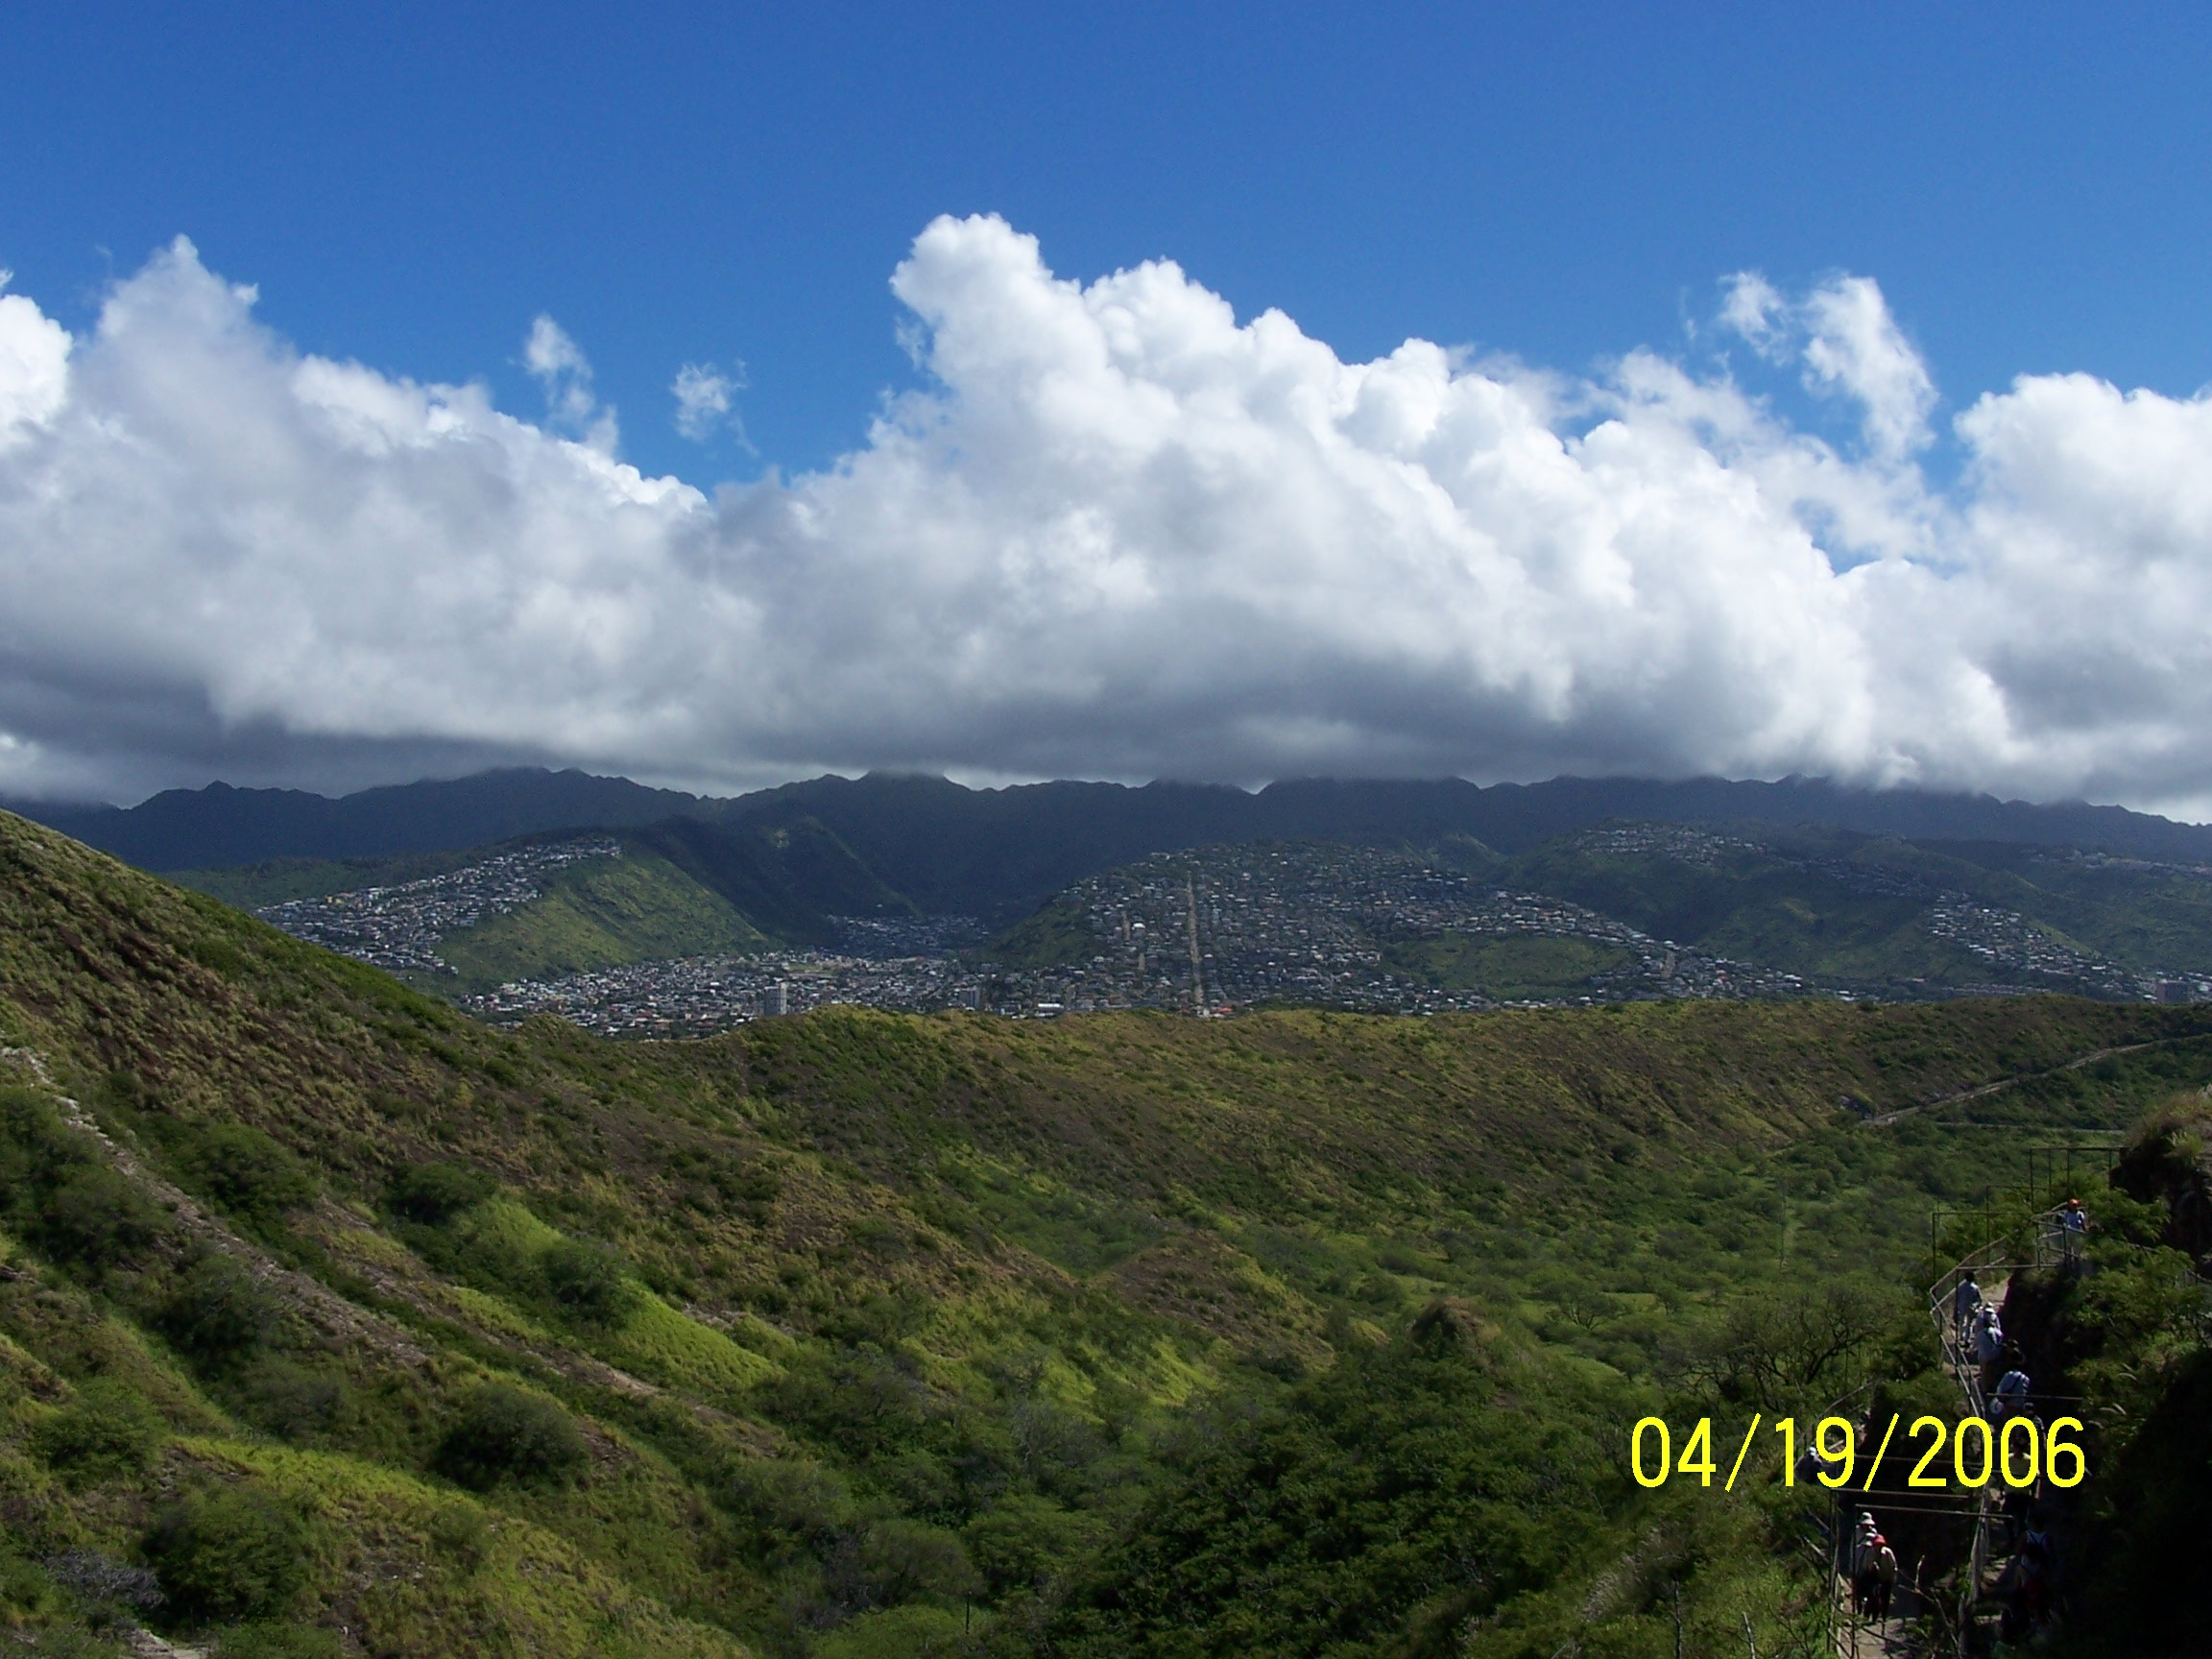 Diamond Head caldera on Oahu, Hawaii